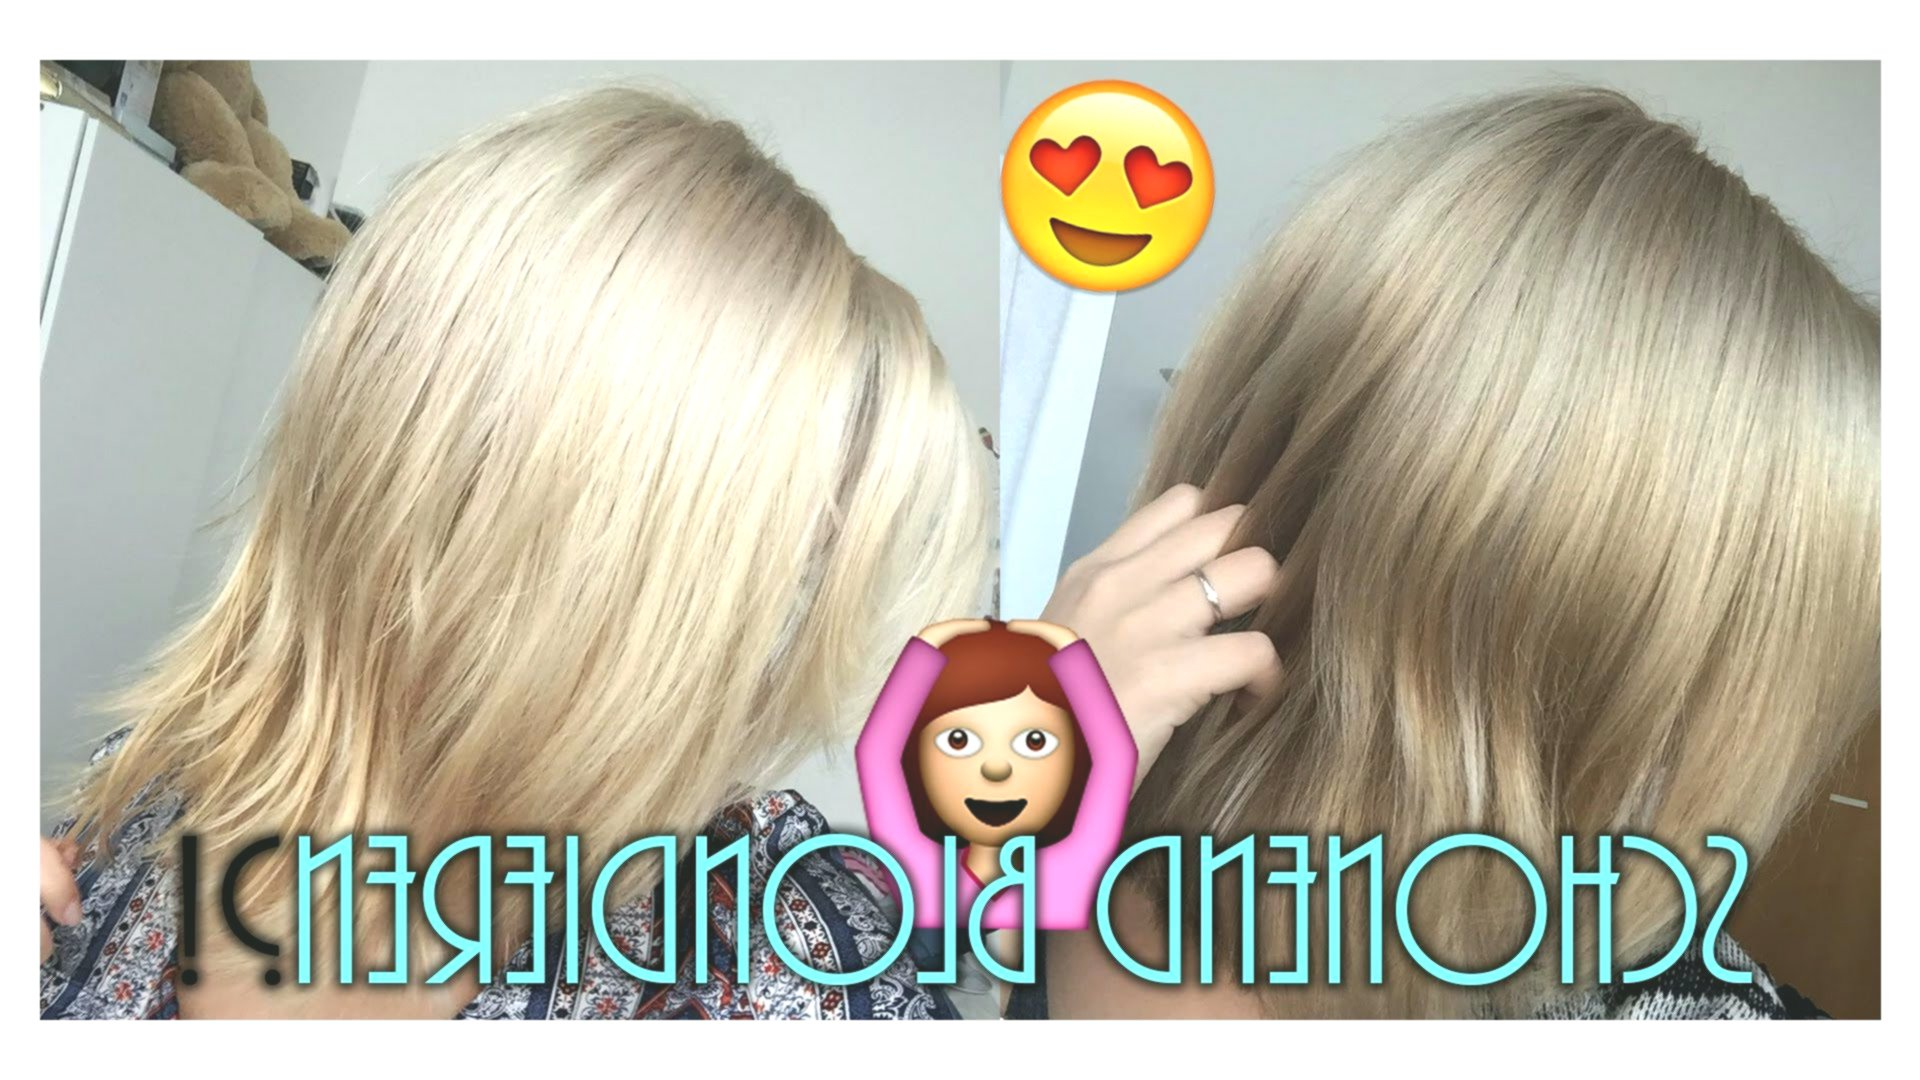 fantastic hair blonding without yellowing concept-top hair blonding No yellowish-tinged design